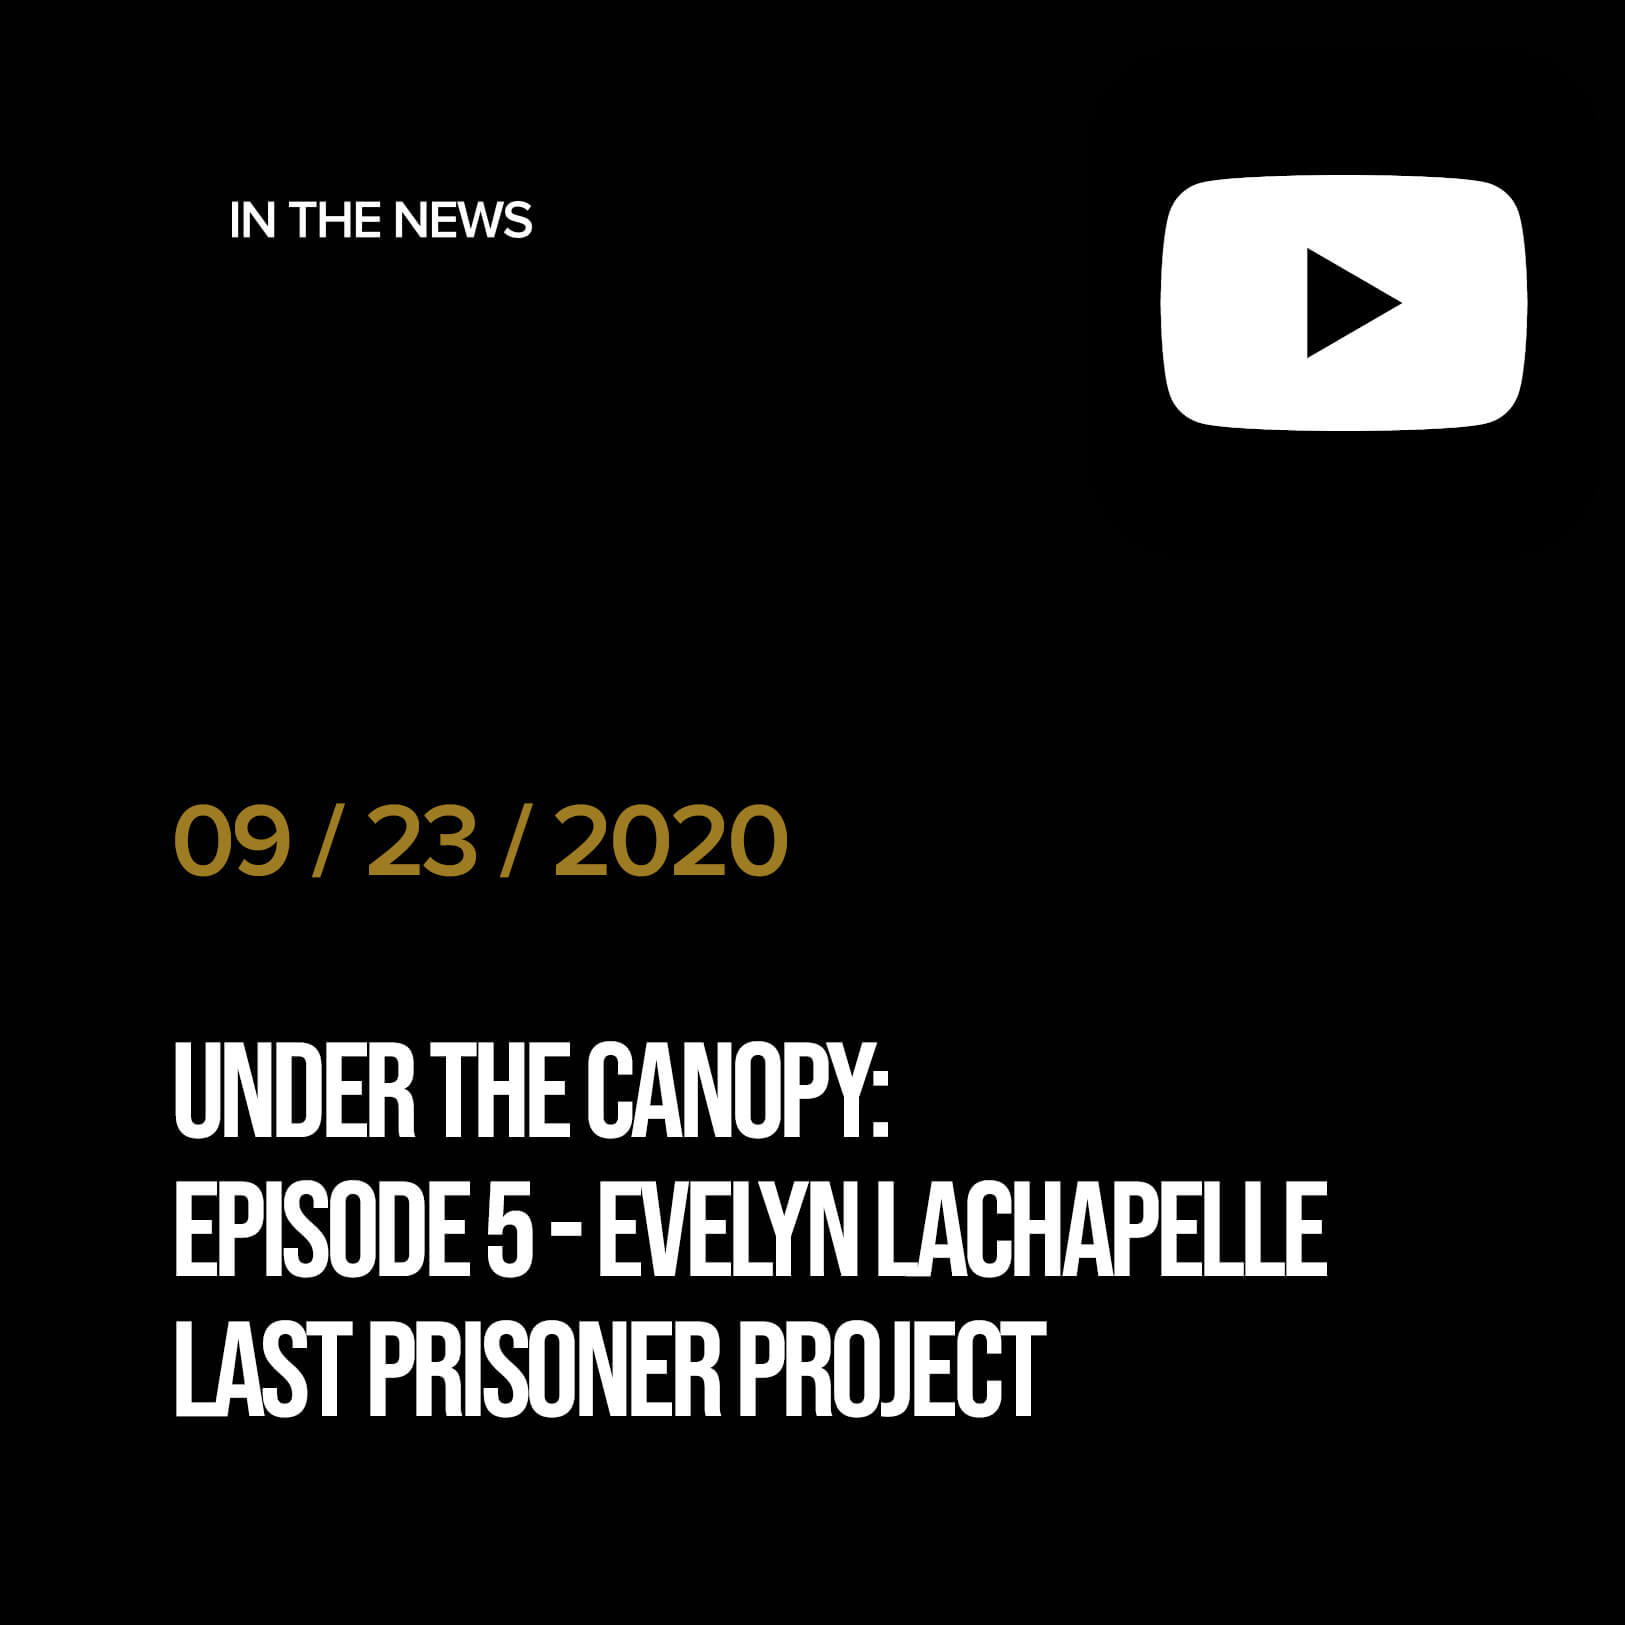 Under The Canopy: Episode 5 - Evelyn LaChapelle, Last Prisoner Project